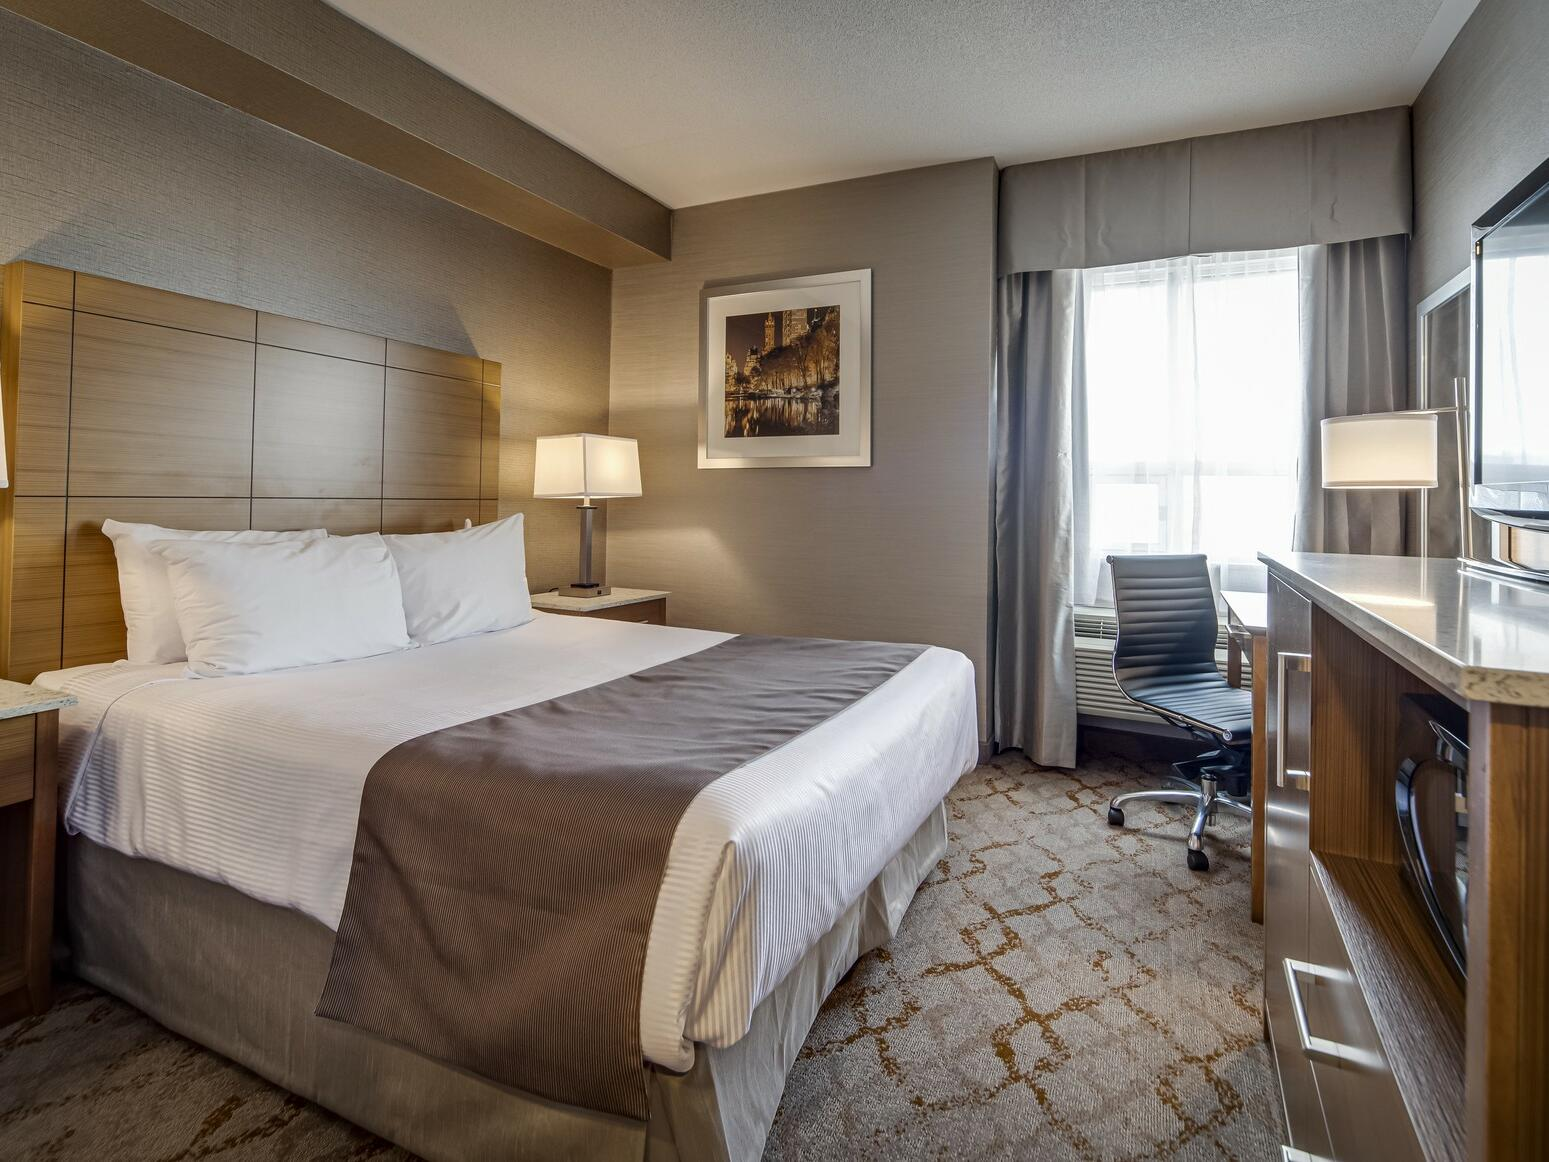 King Studio Suite with Sofa Bed at Monte Carlo Inn Vaughan Suites